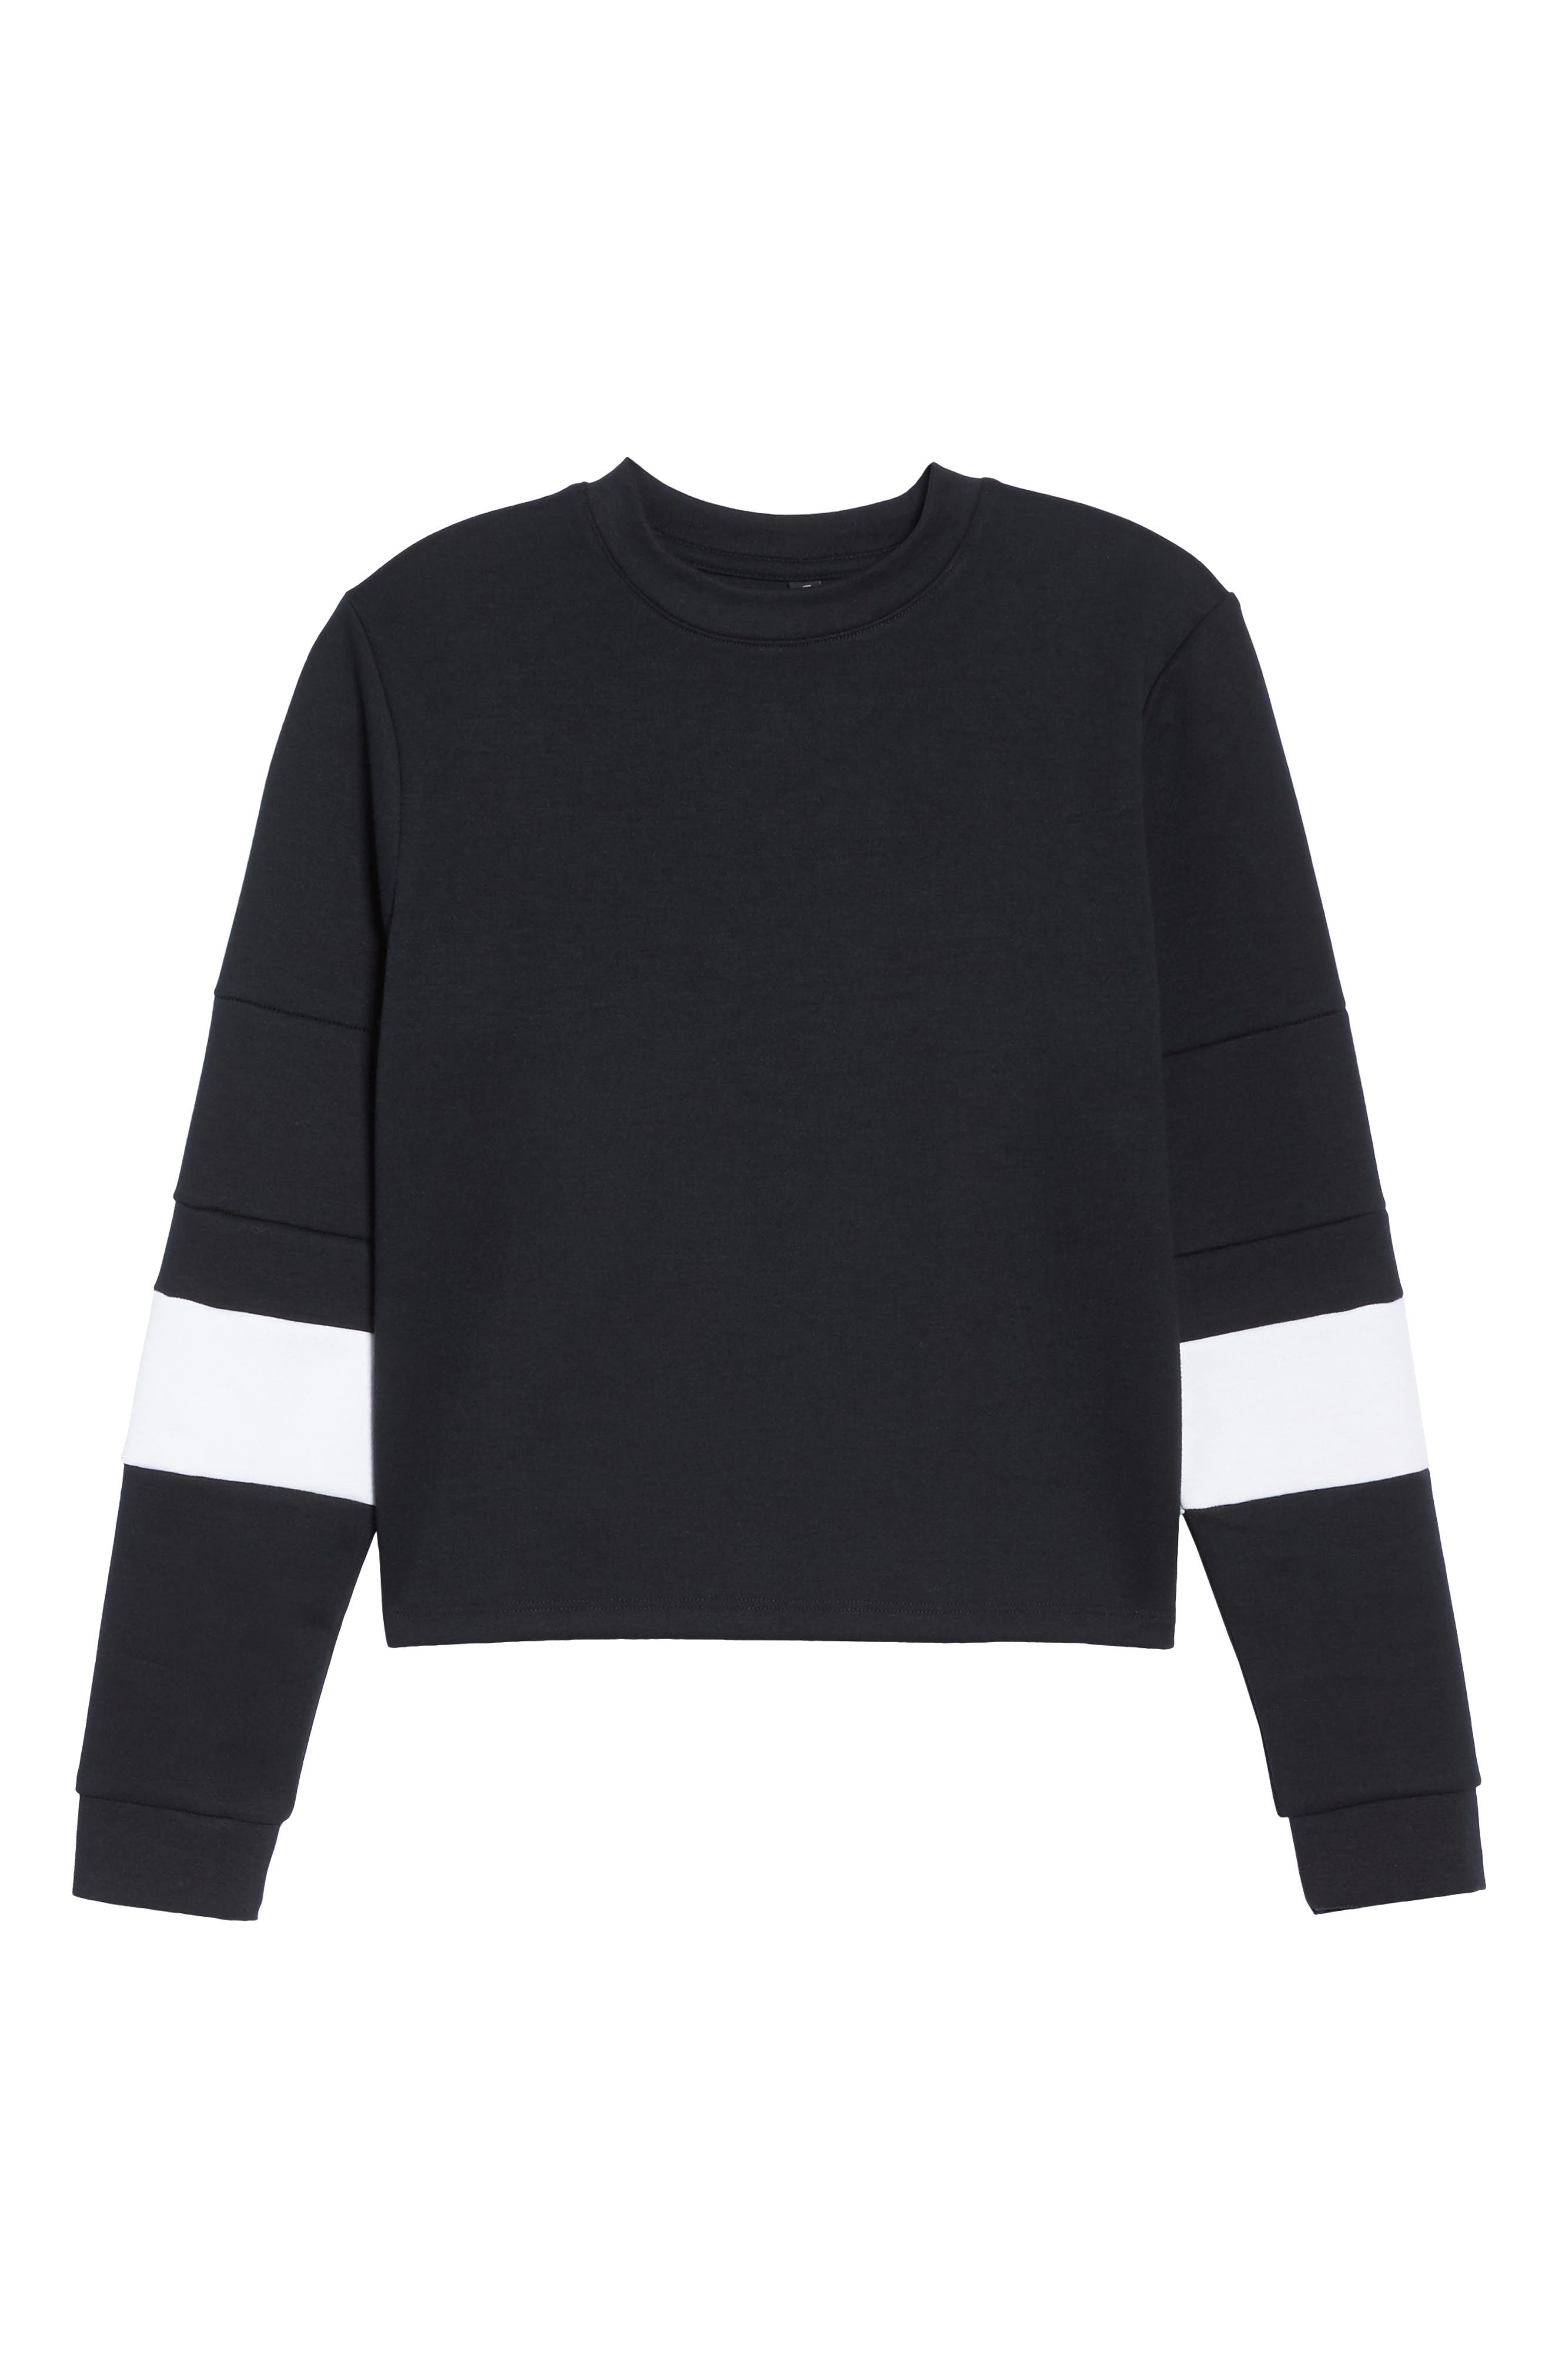 Colorblock Crewneck Top,                             Alternate thumbnail 7, color,                             BLACK